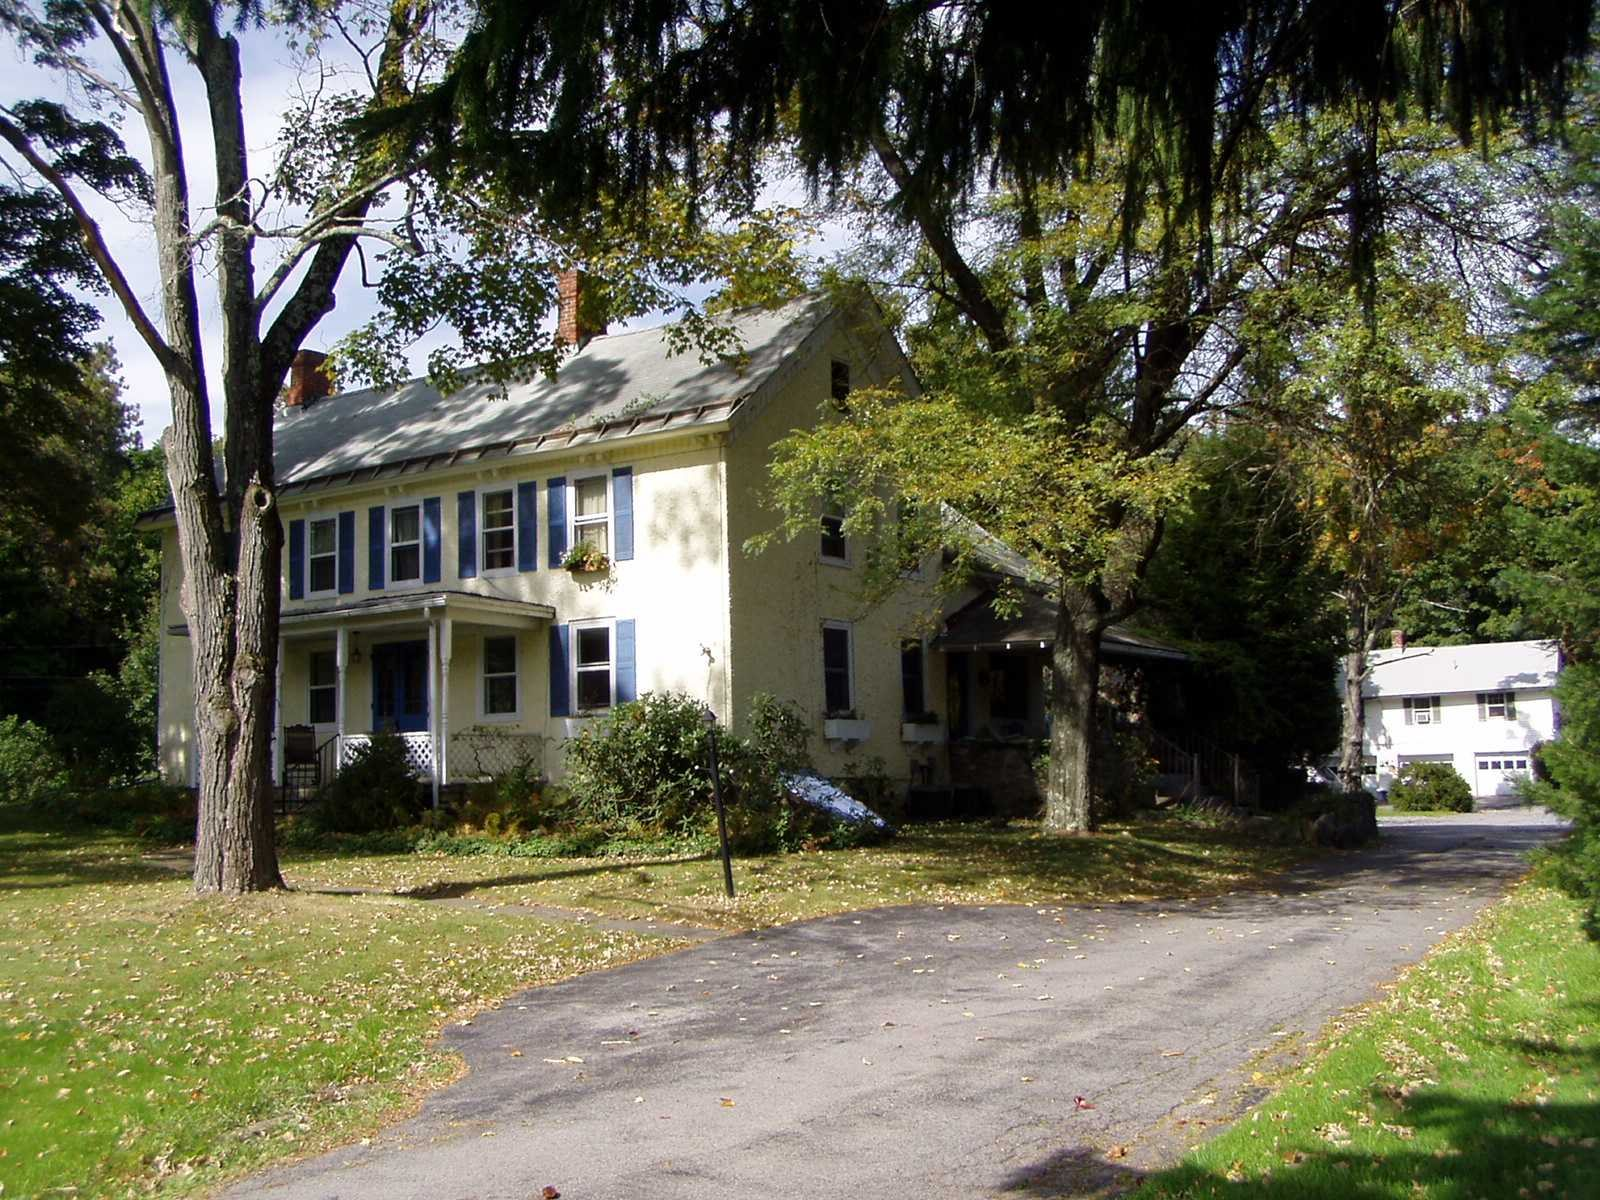 Single Family Home for Sale at 39 W DORSEY Lane 39 W DORSEY Lane Hyde Park, New York 12538 United States